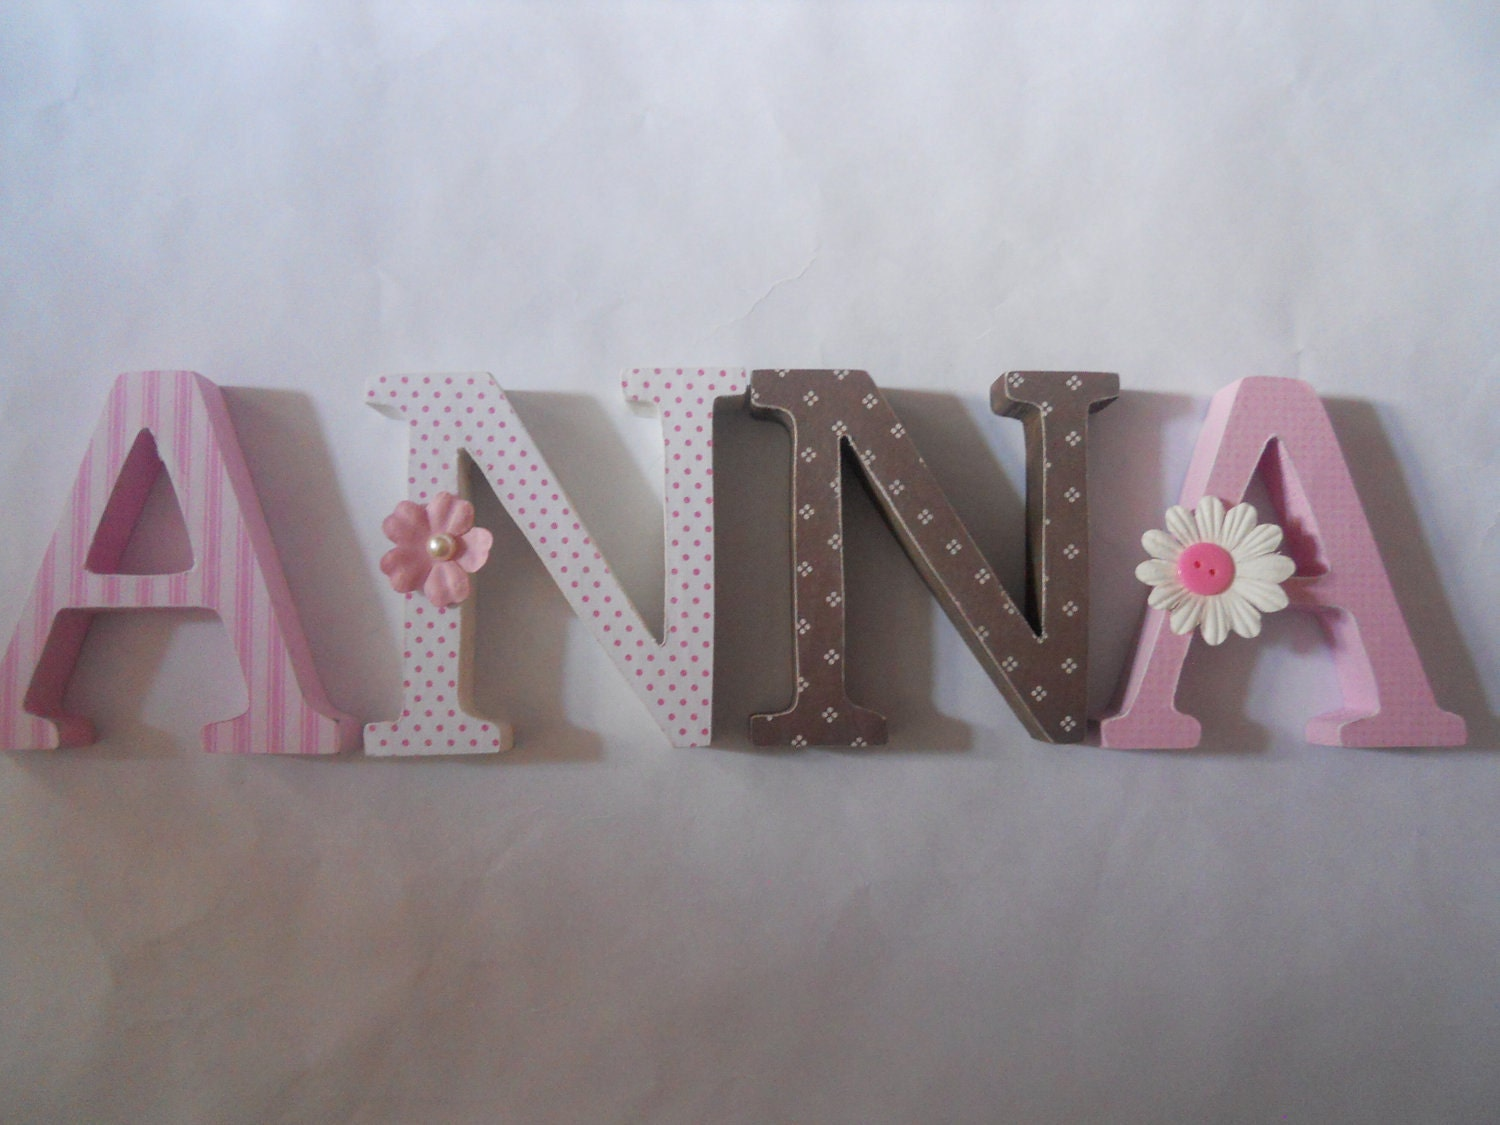 alphabet wooden letters for nursery in pink white and brown With wooden letters for nursery